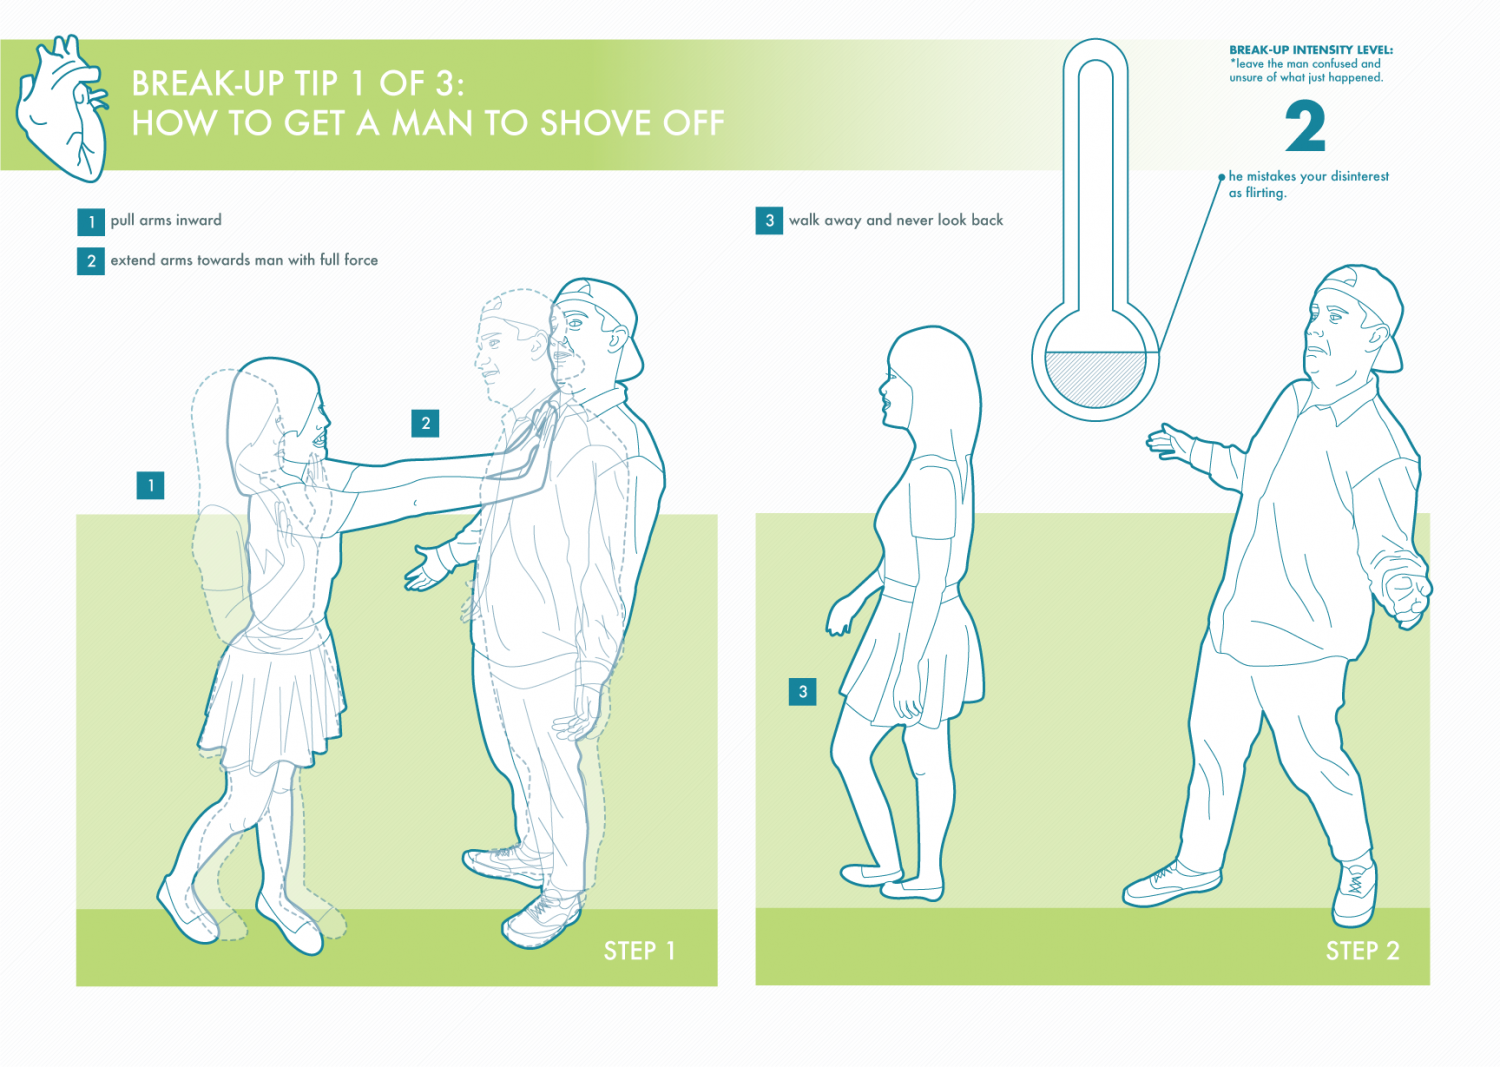 How to get a man to shove off Infographic